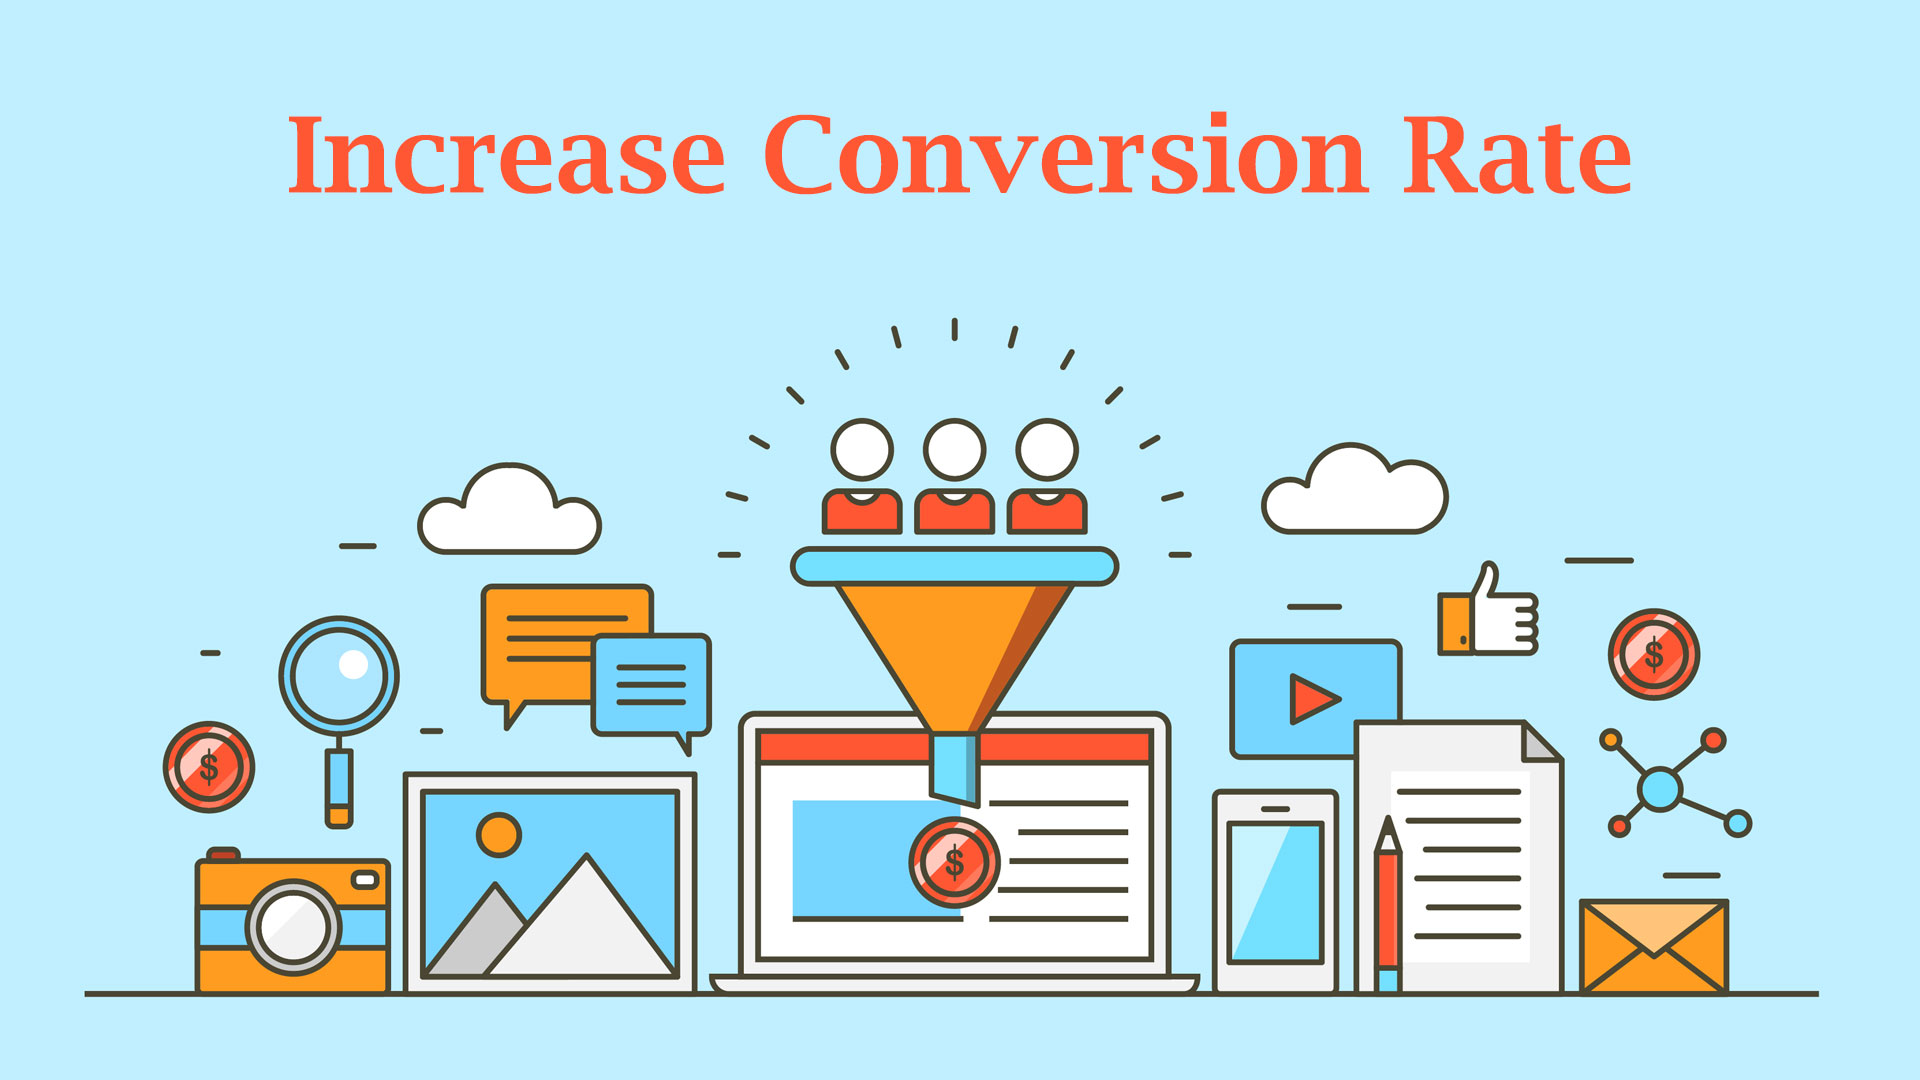 Increase the Conversion Rate